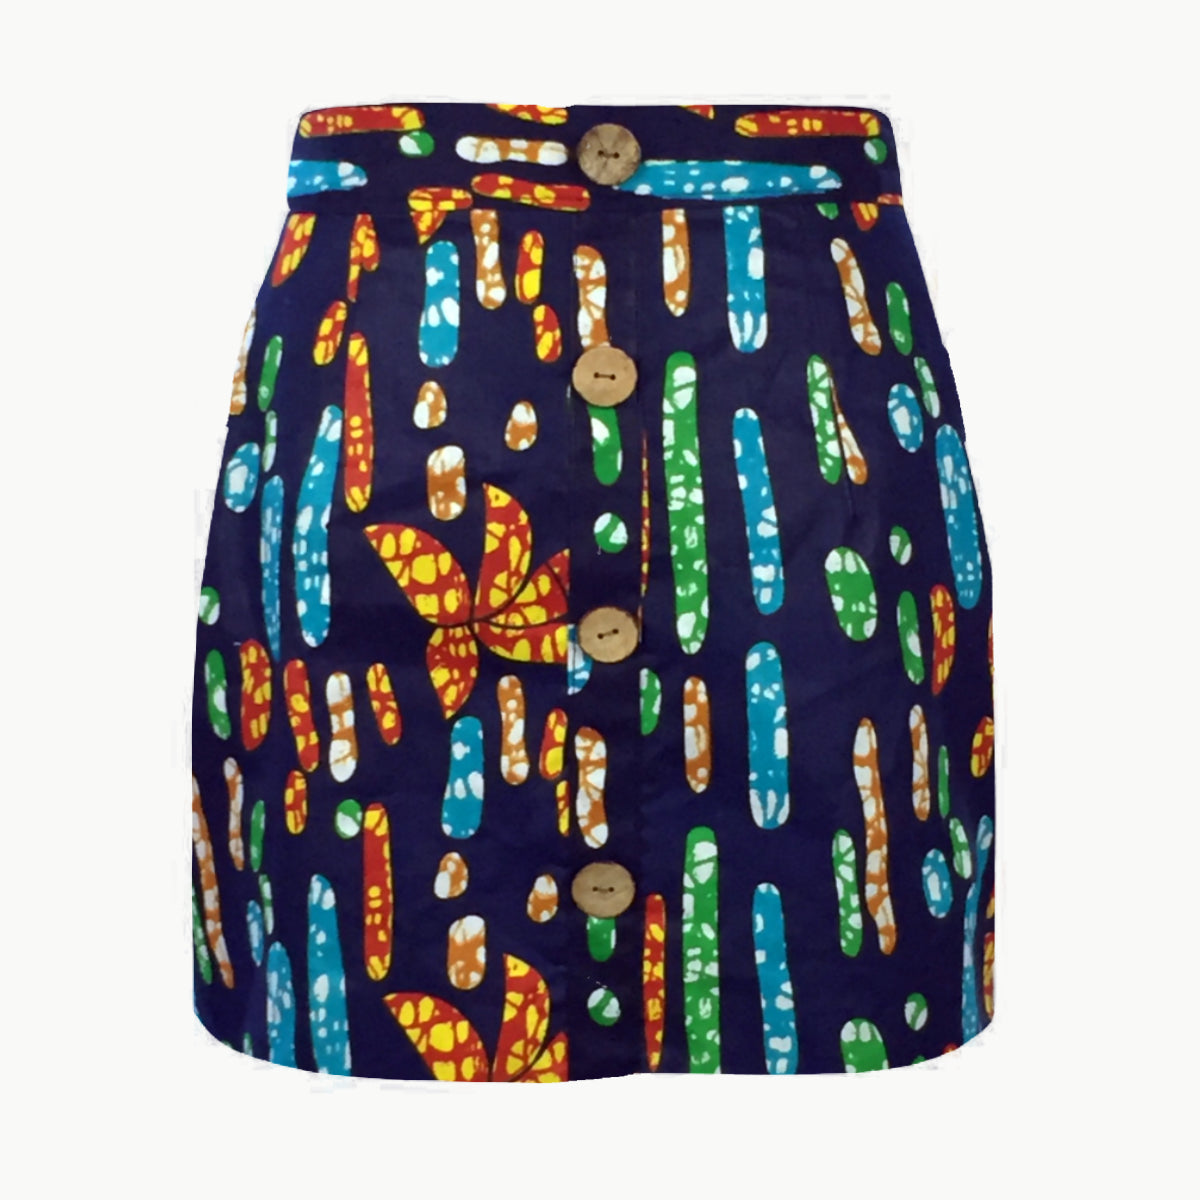 The Dakar Iris African Print A-Line Mini Skirt